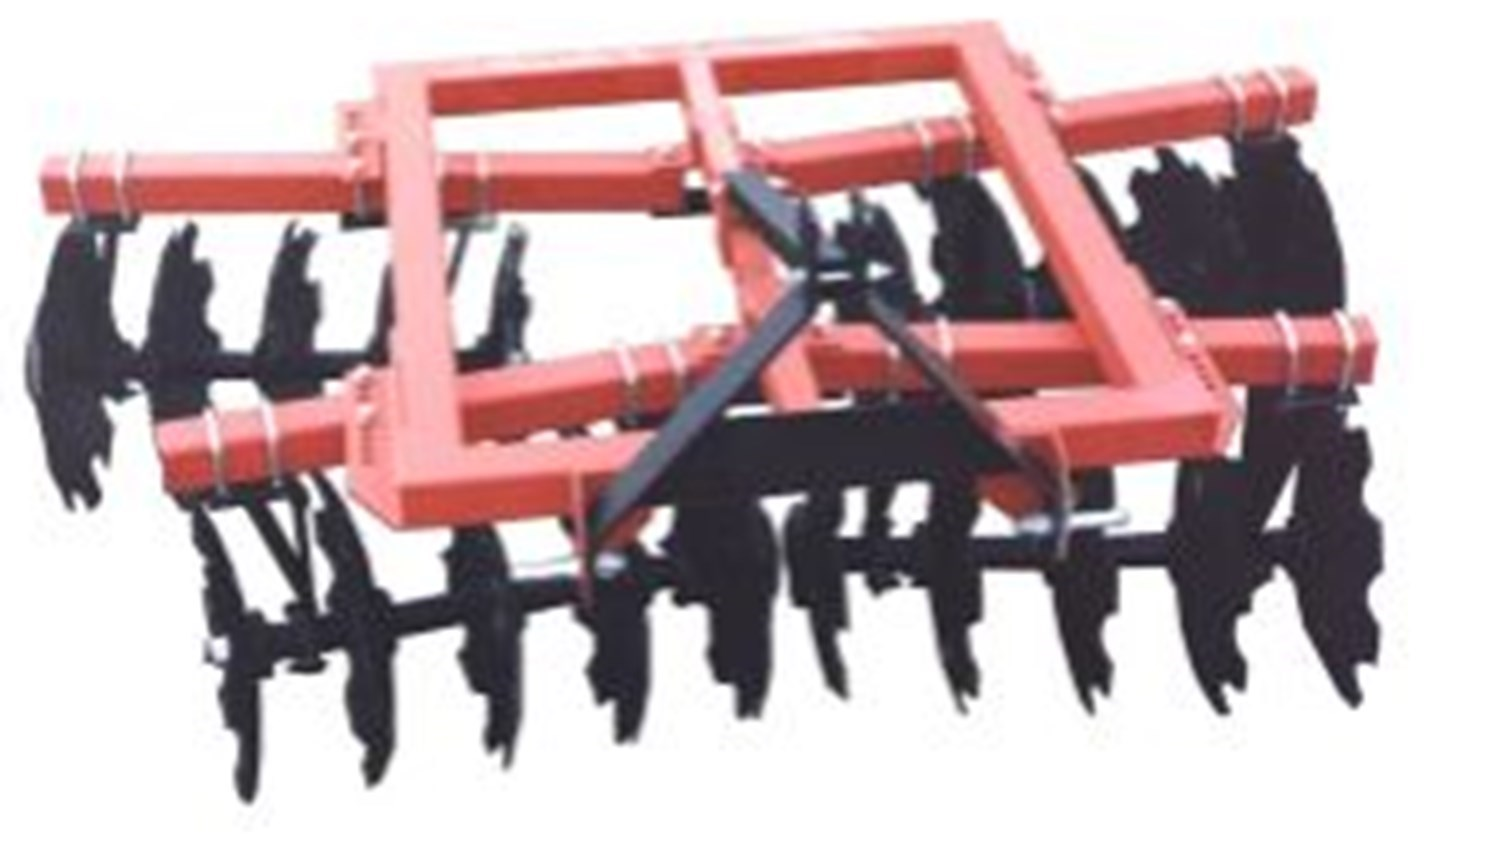 A&B EAGLE FH DISK FIELD HARROW SERIES